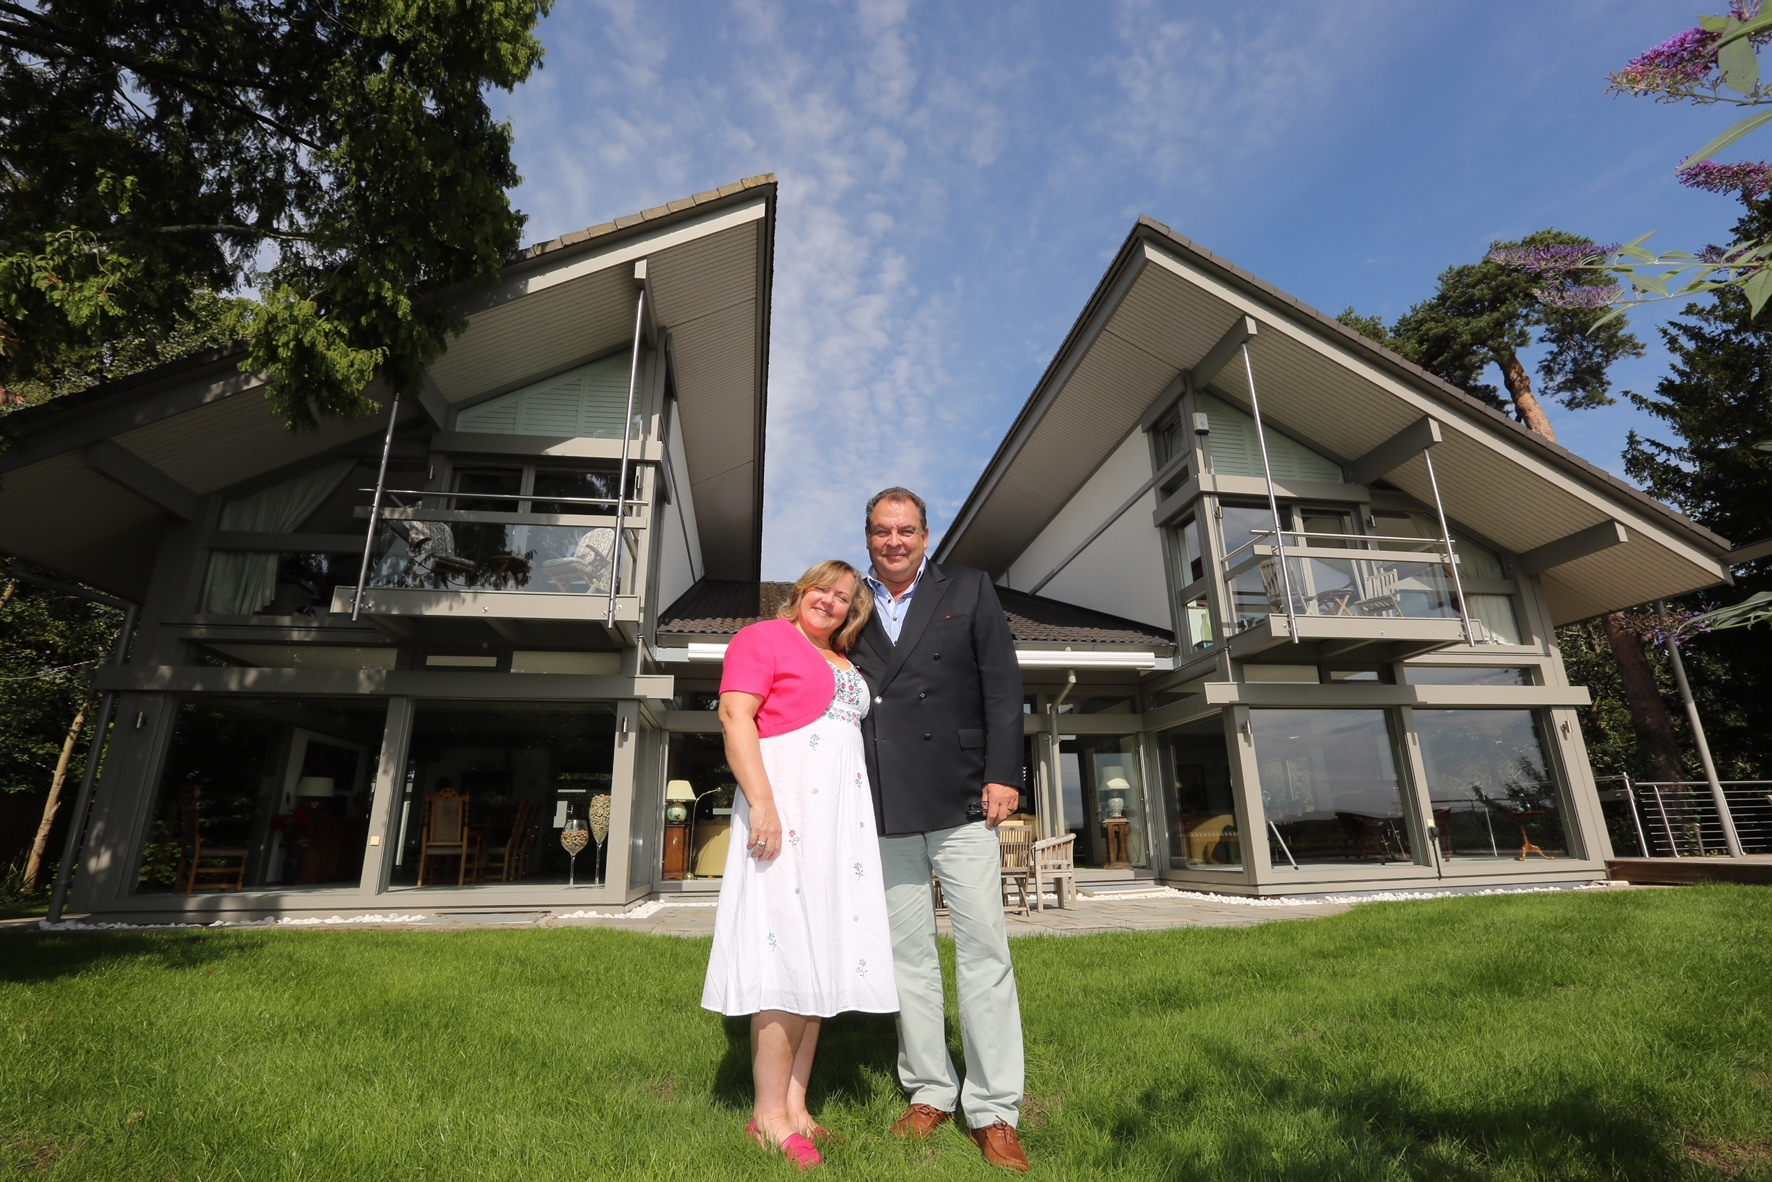 WIN A HOUSE: Mark and Sharon Beresford at their home in Avon Castle, Ringwood, which they are selling through a competition